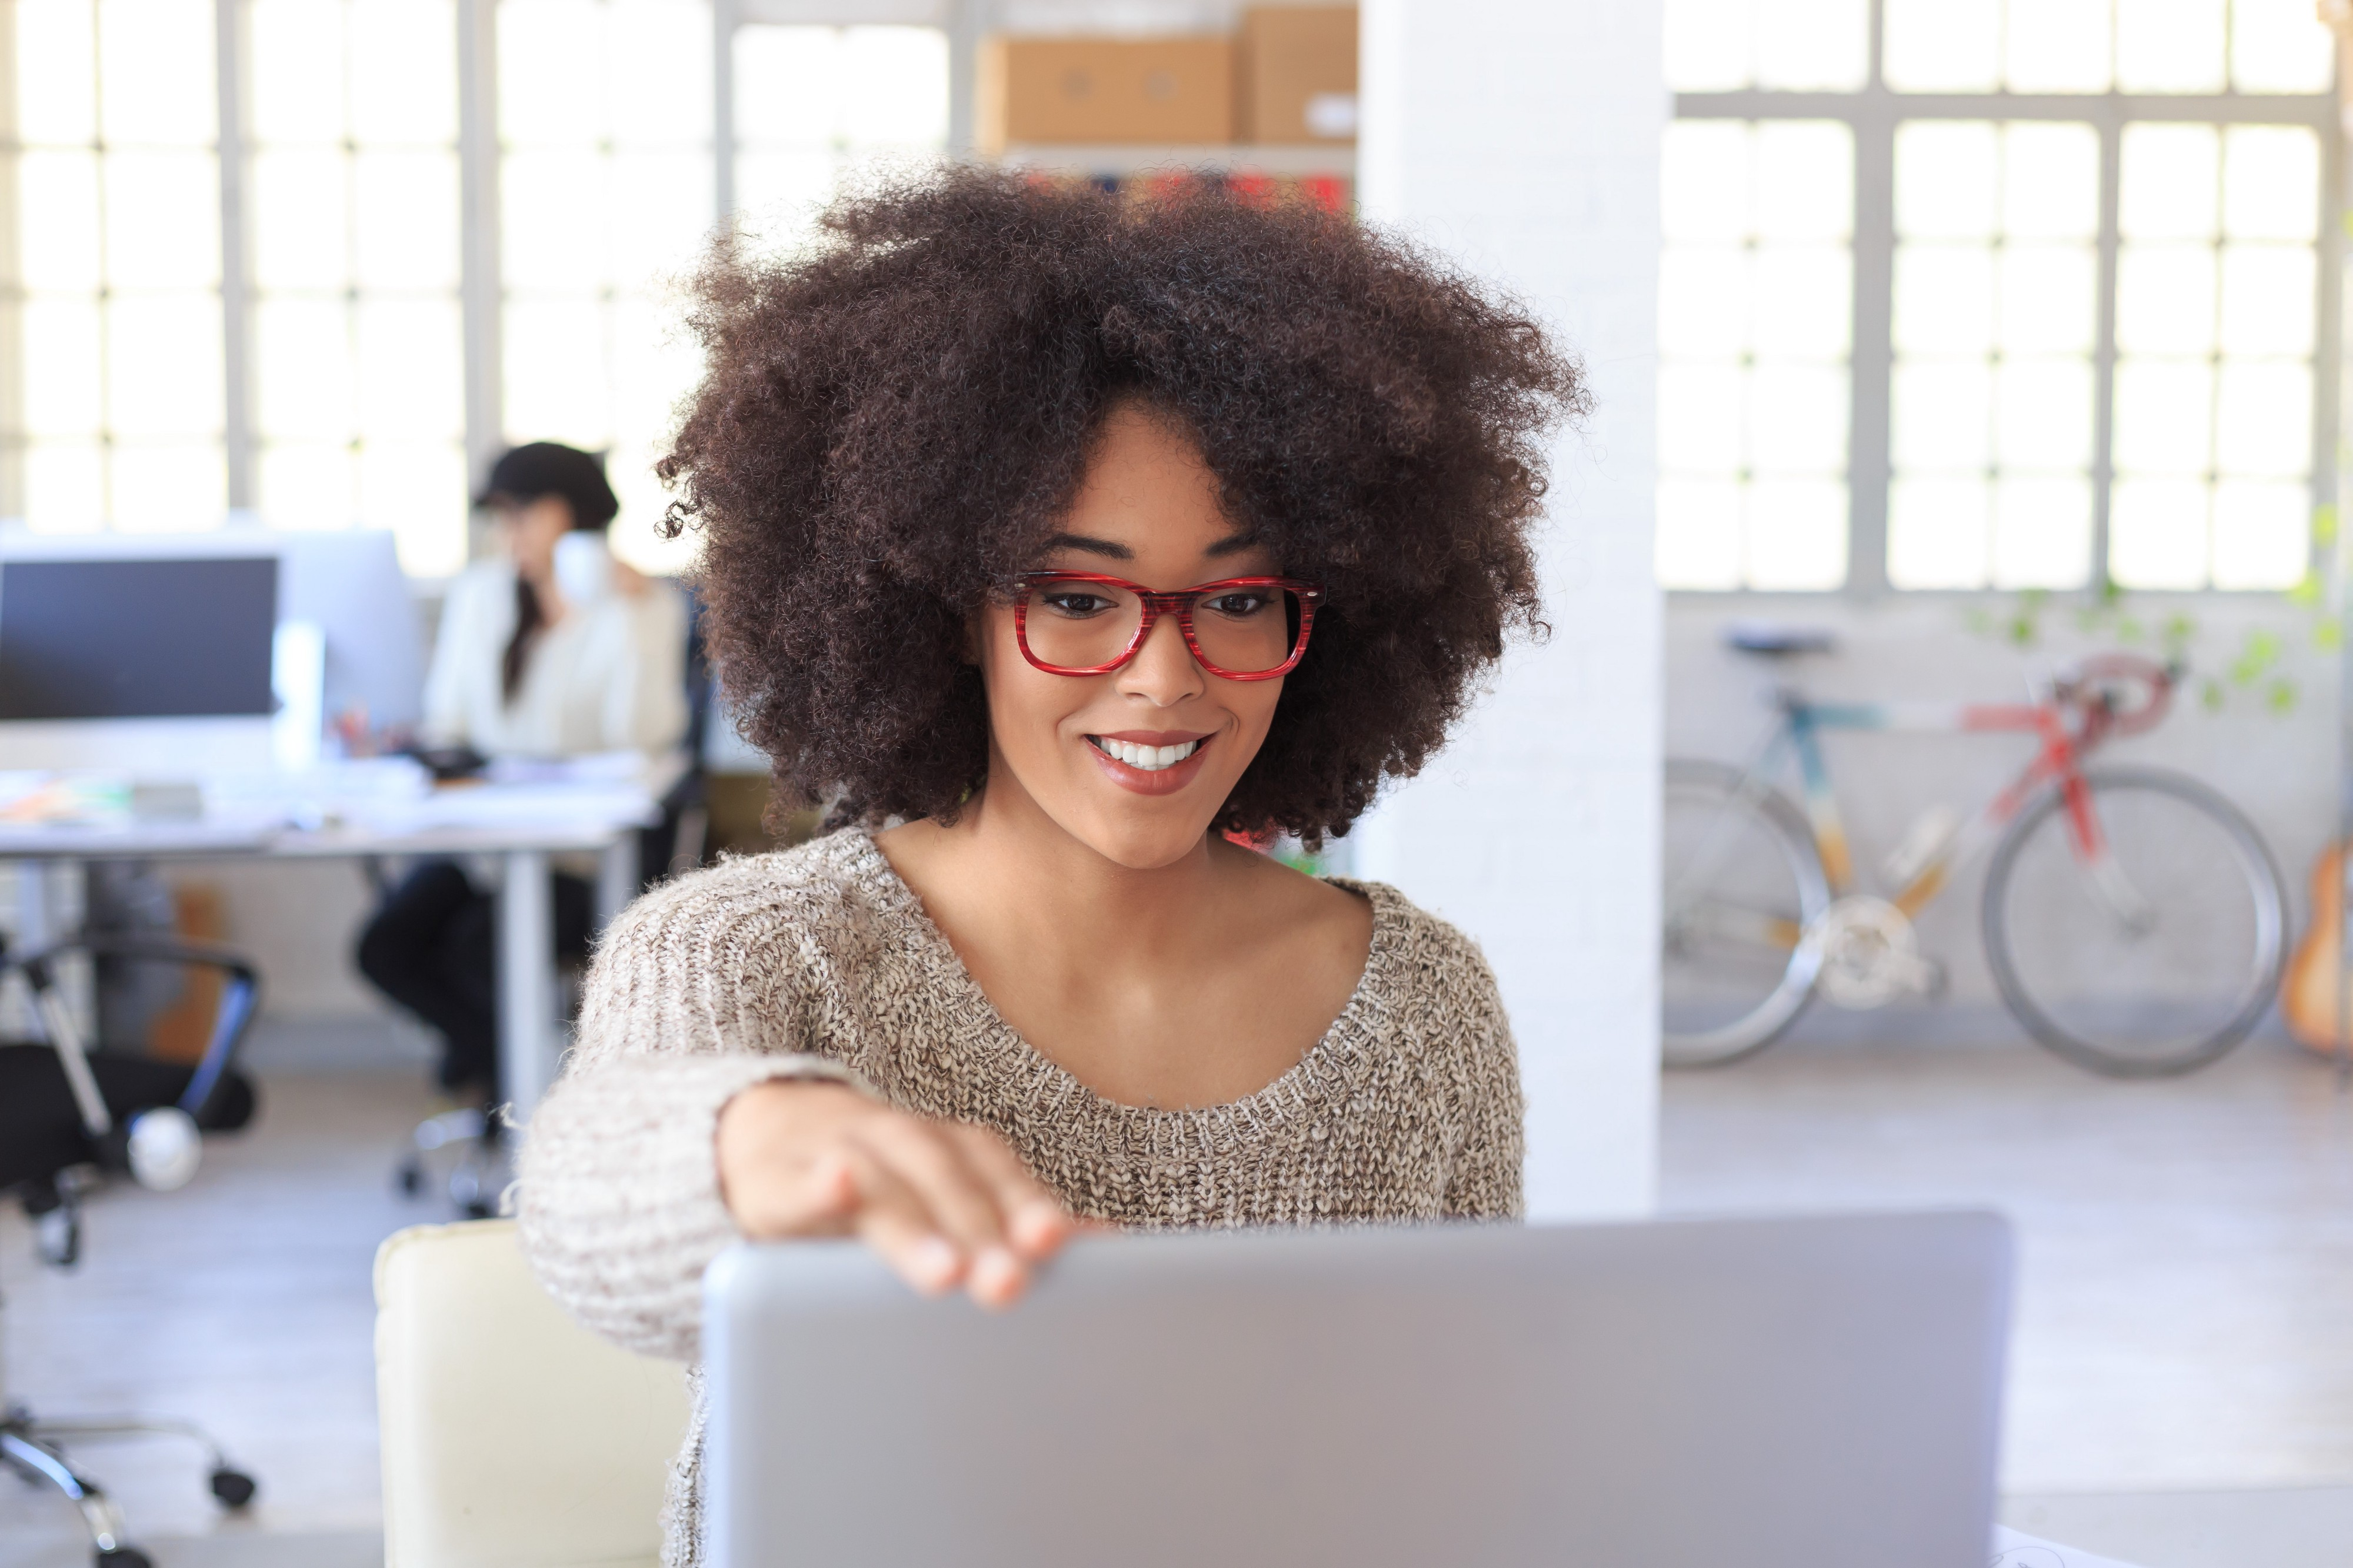 Smiling young woman with red eyeglasses finishing her work at the office and closing her laptop.